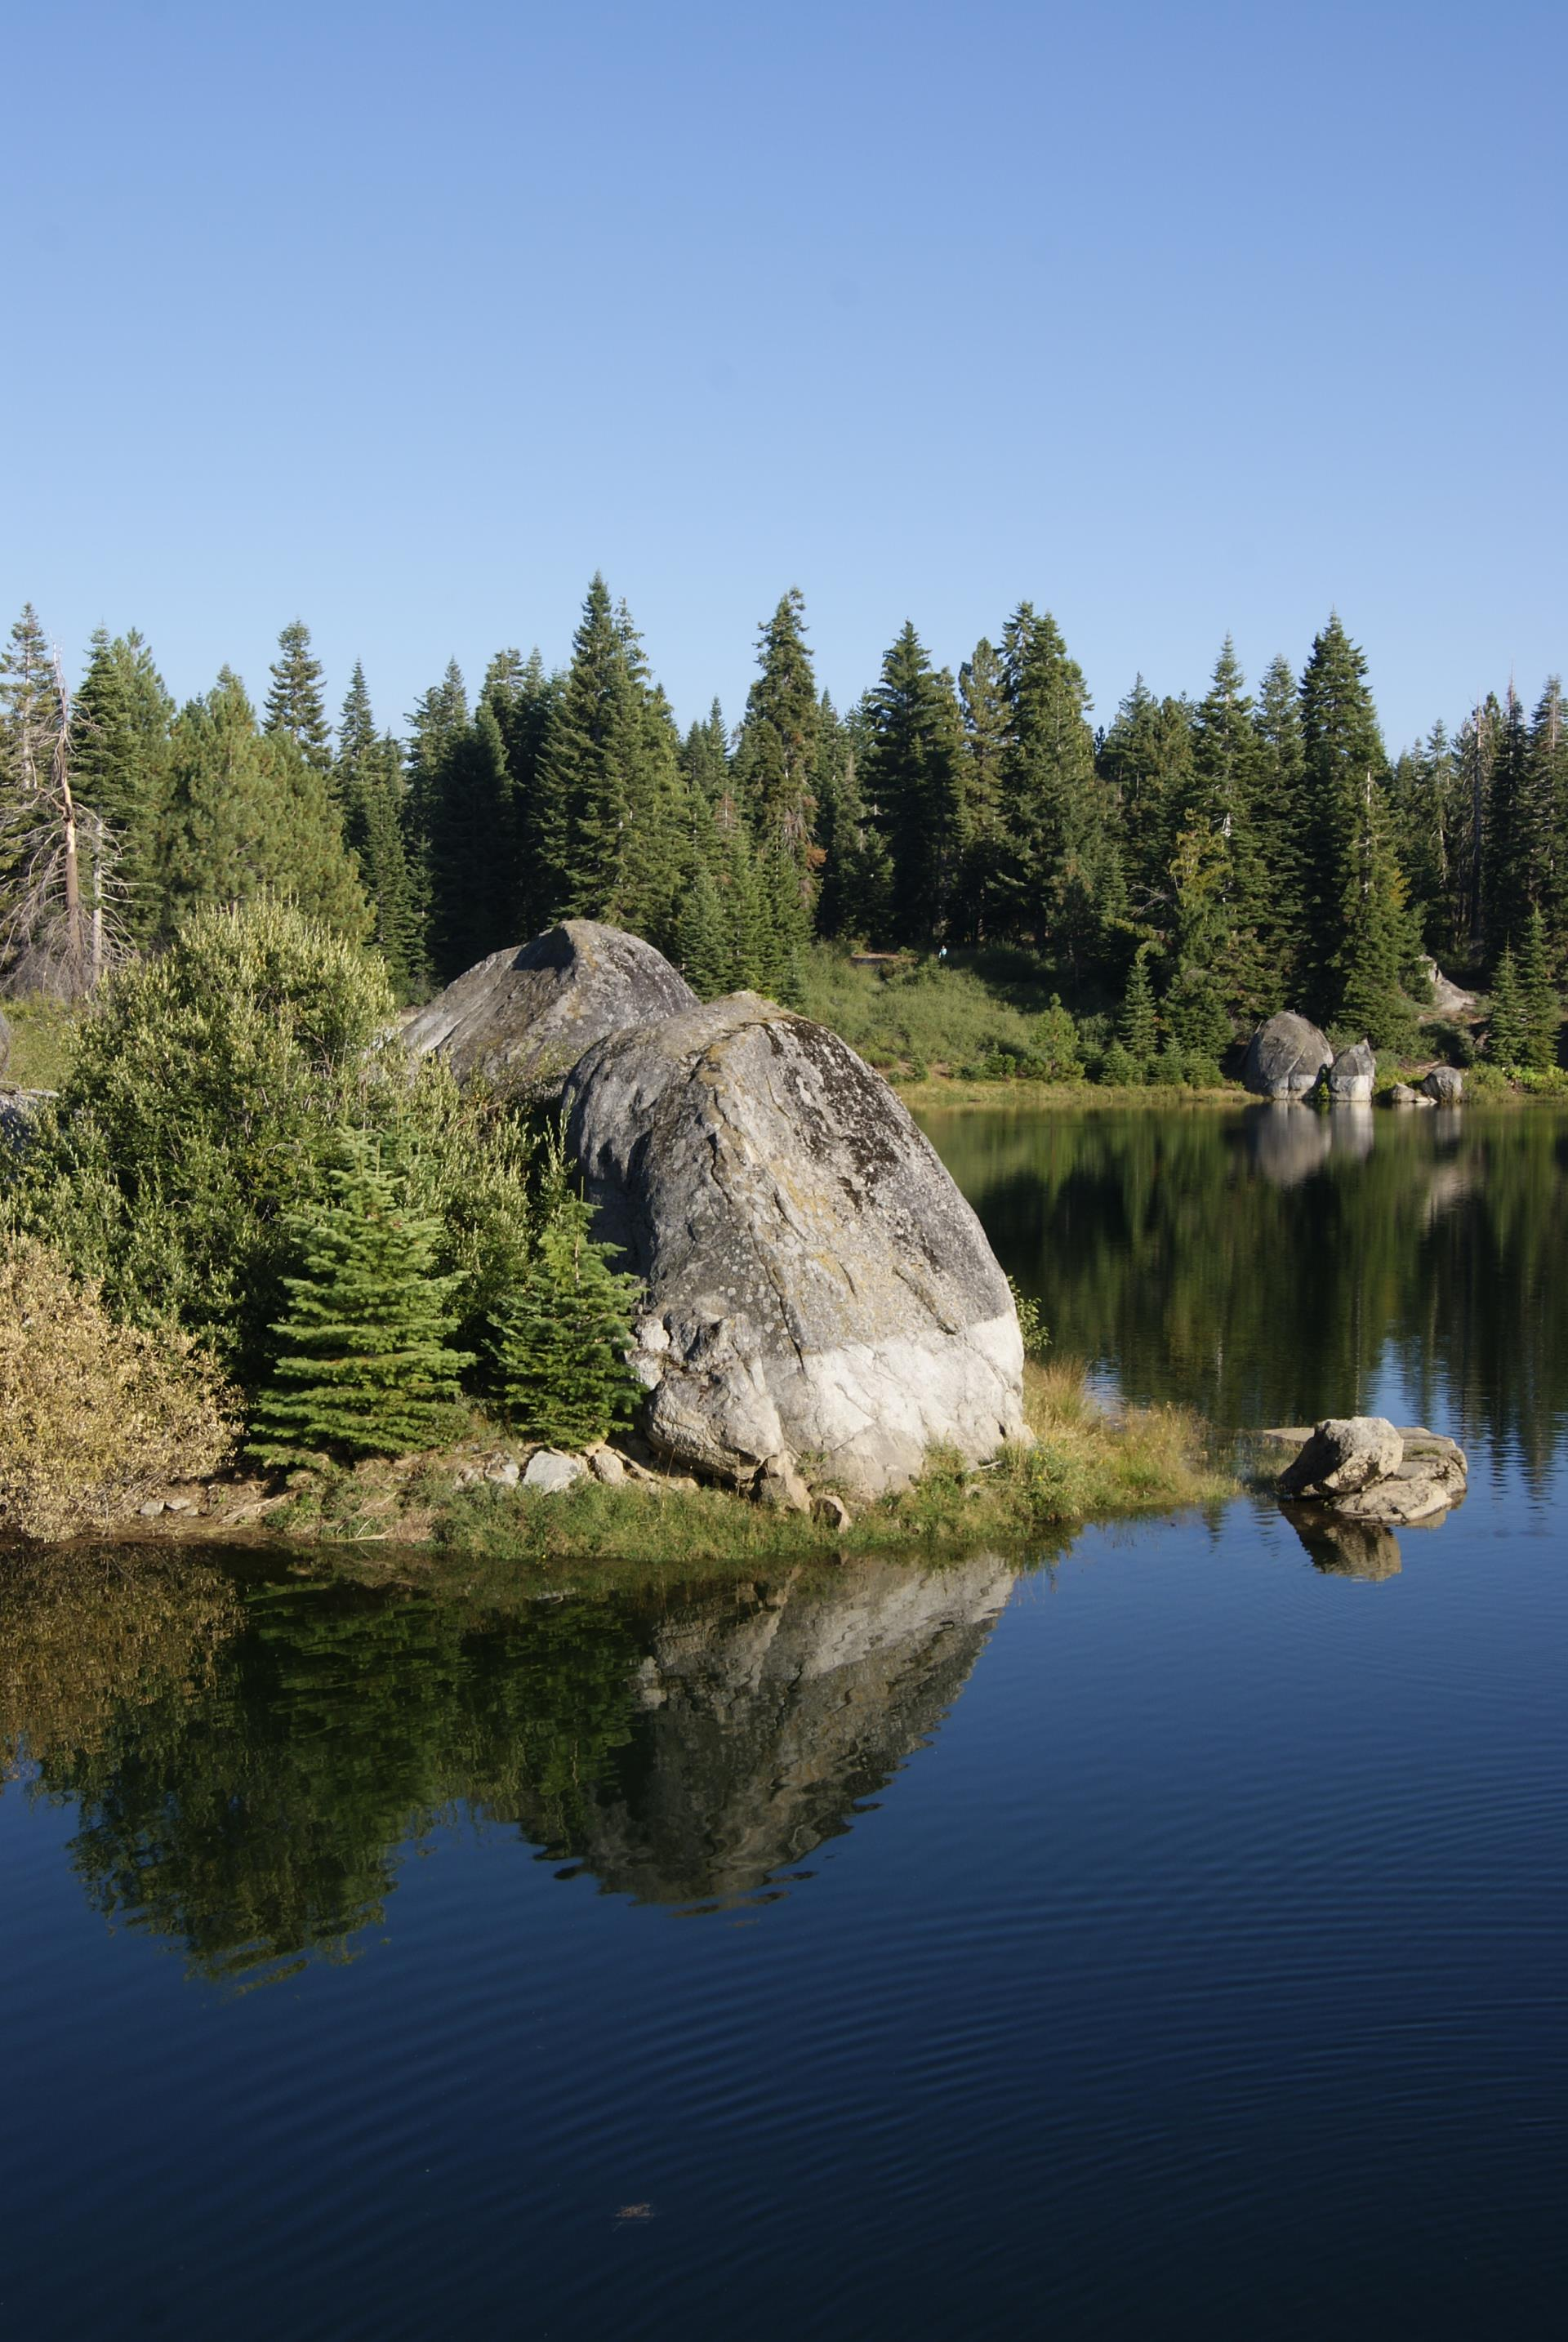 Reservoir near Shaver Lake - Photo by David Tijerina